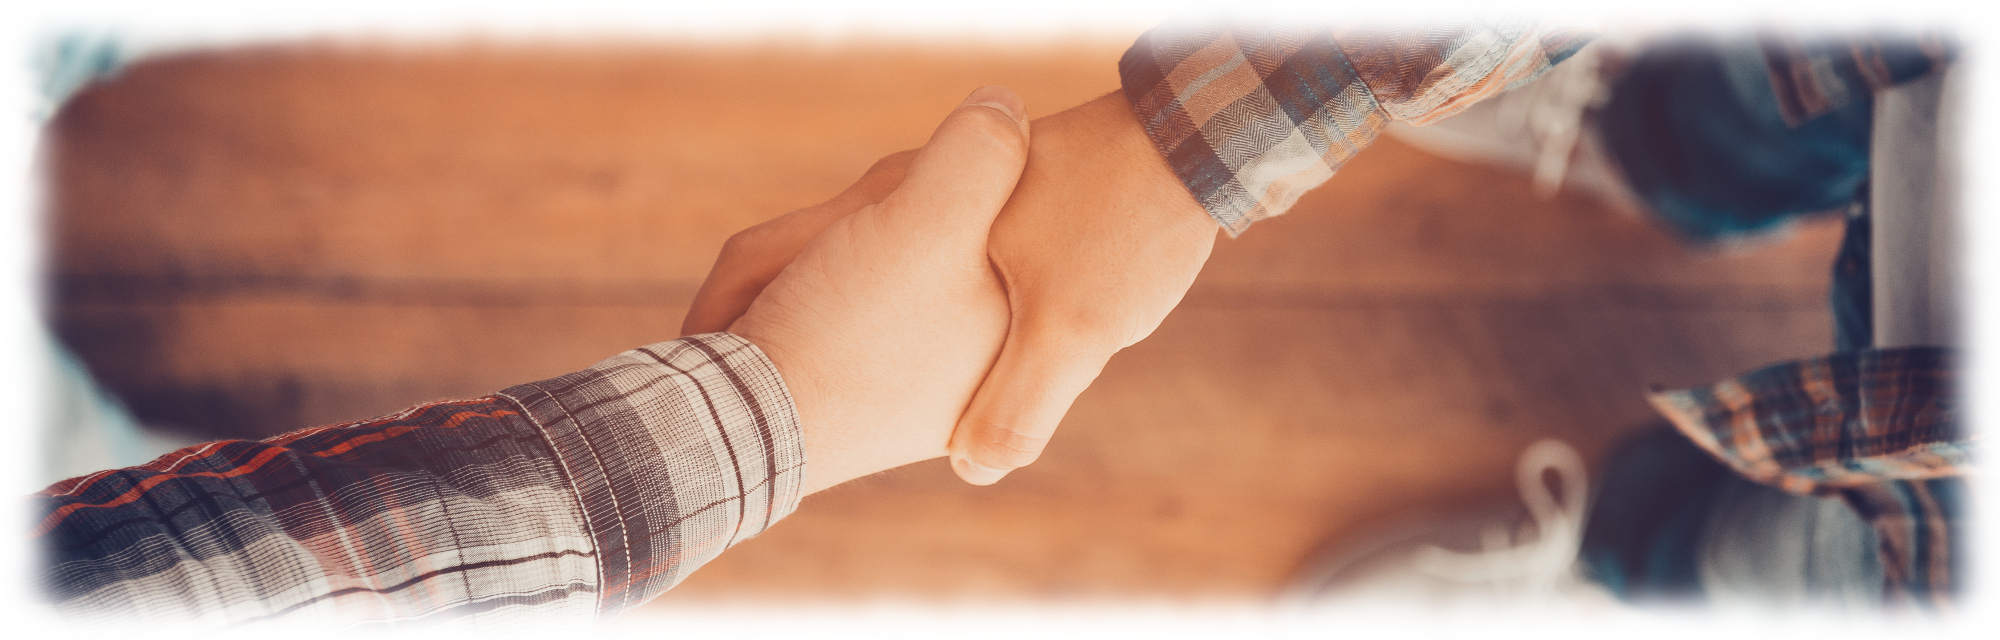 two men shaking hands over hardwood floor